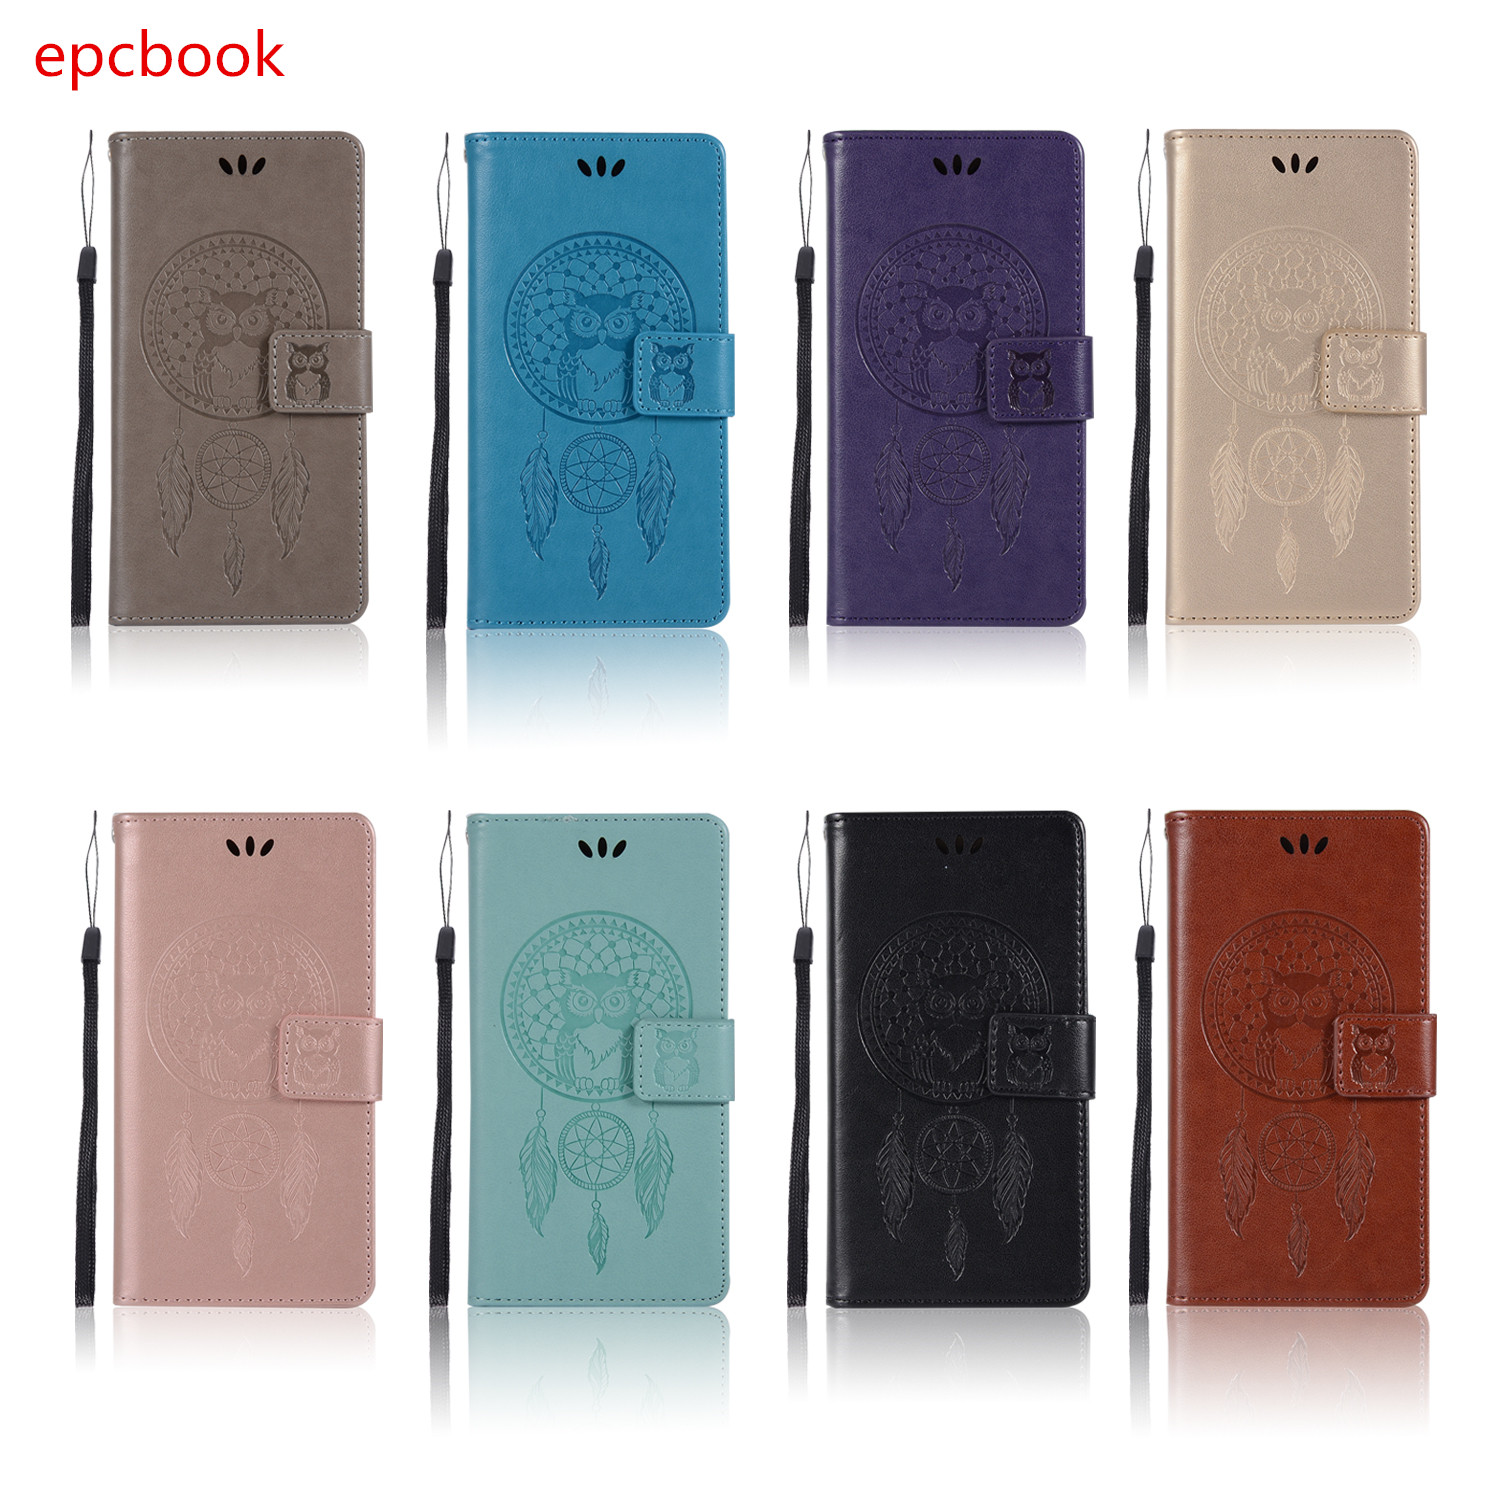 epcbook plain PU leather Wallet Case For huawei honor 9 8 8pro Case Luxury Flip Kickstand Phone Cover shell For honor 9i v9 owl